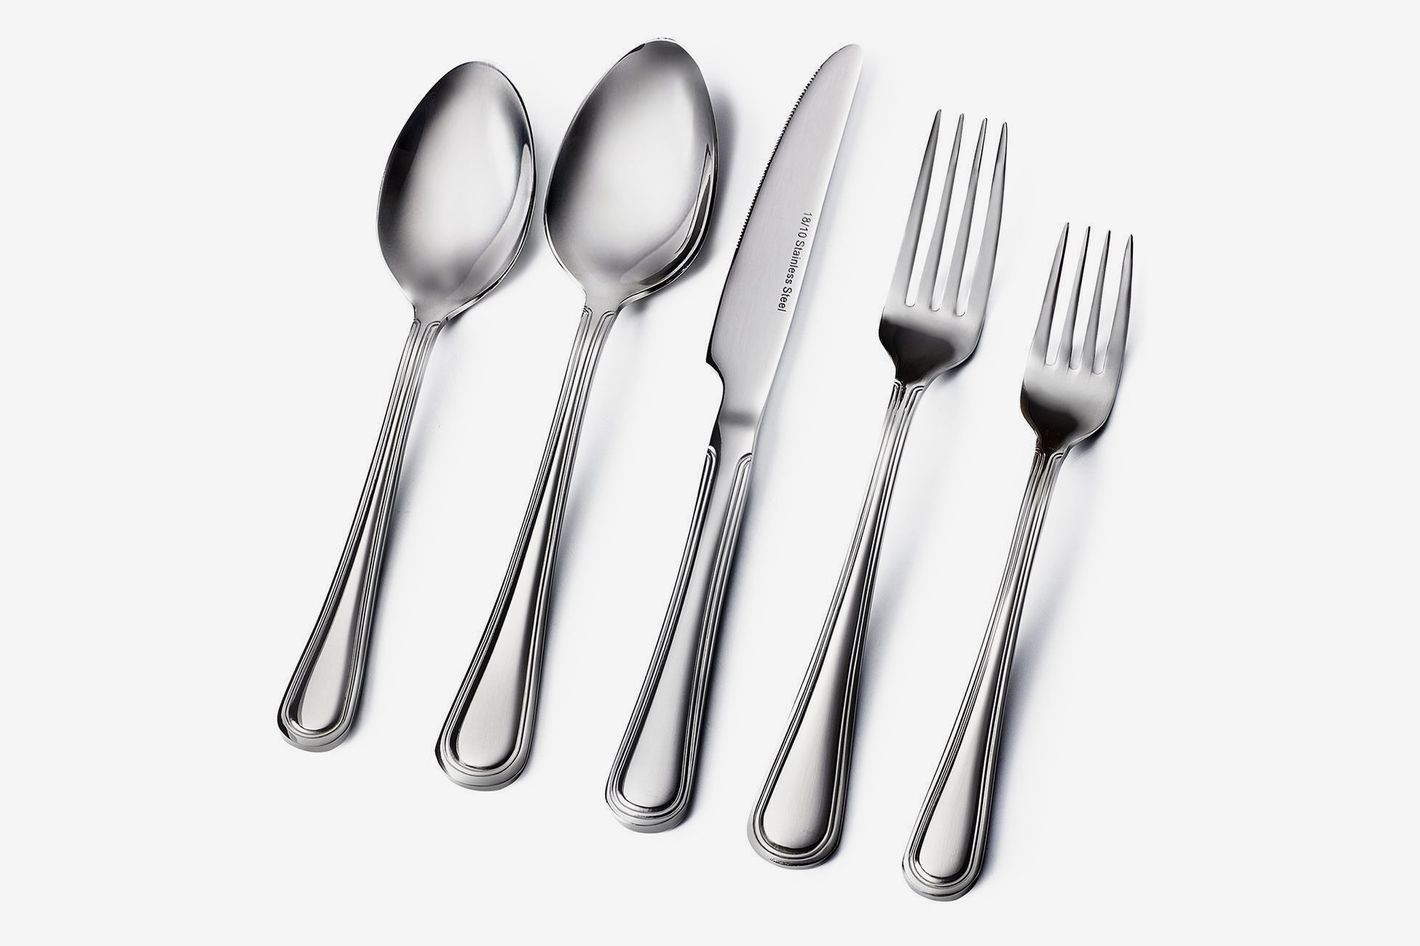 15 Best Flatware And Silverware Sets 2019